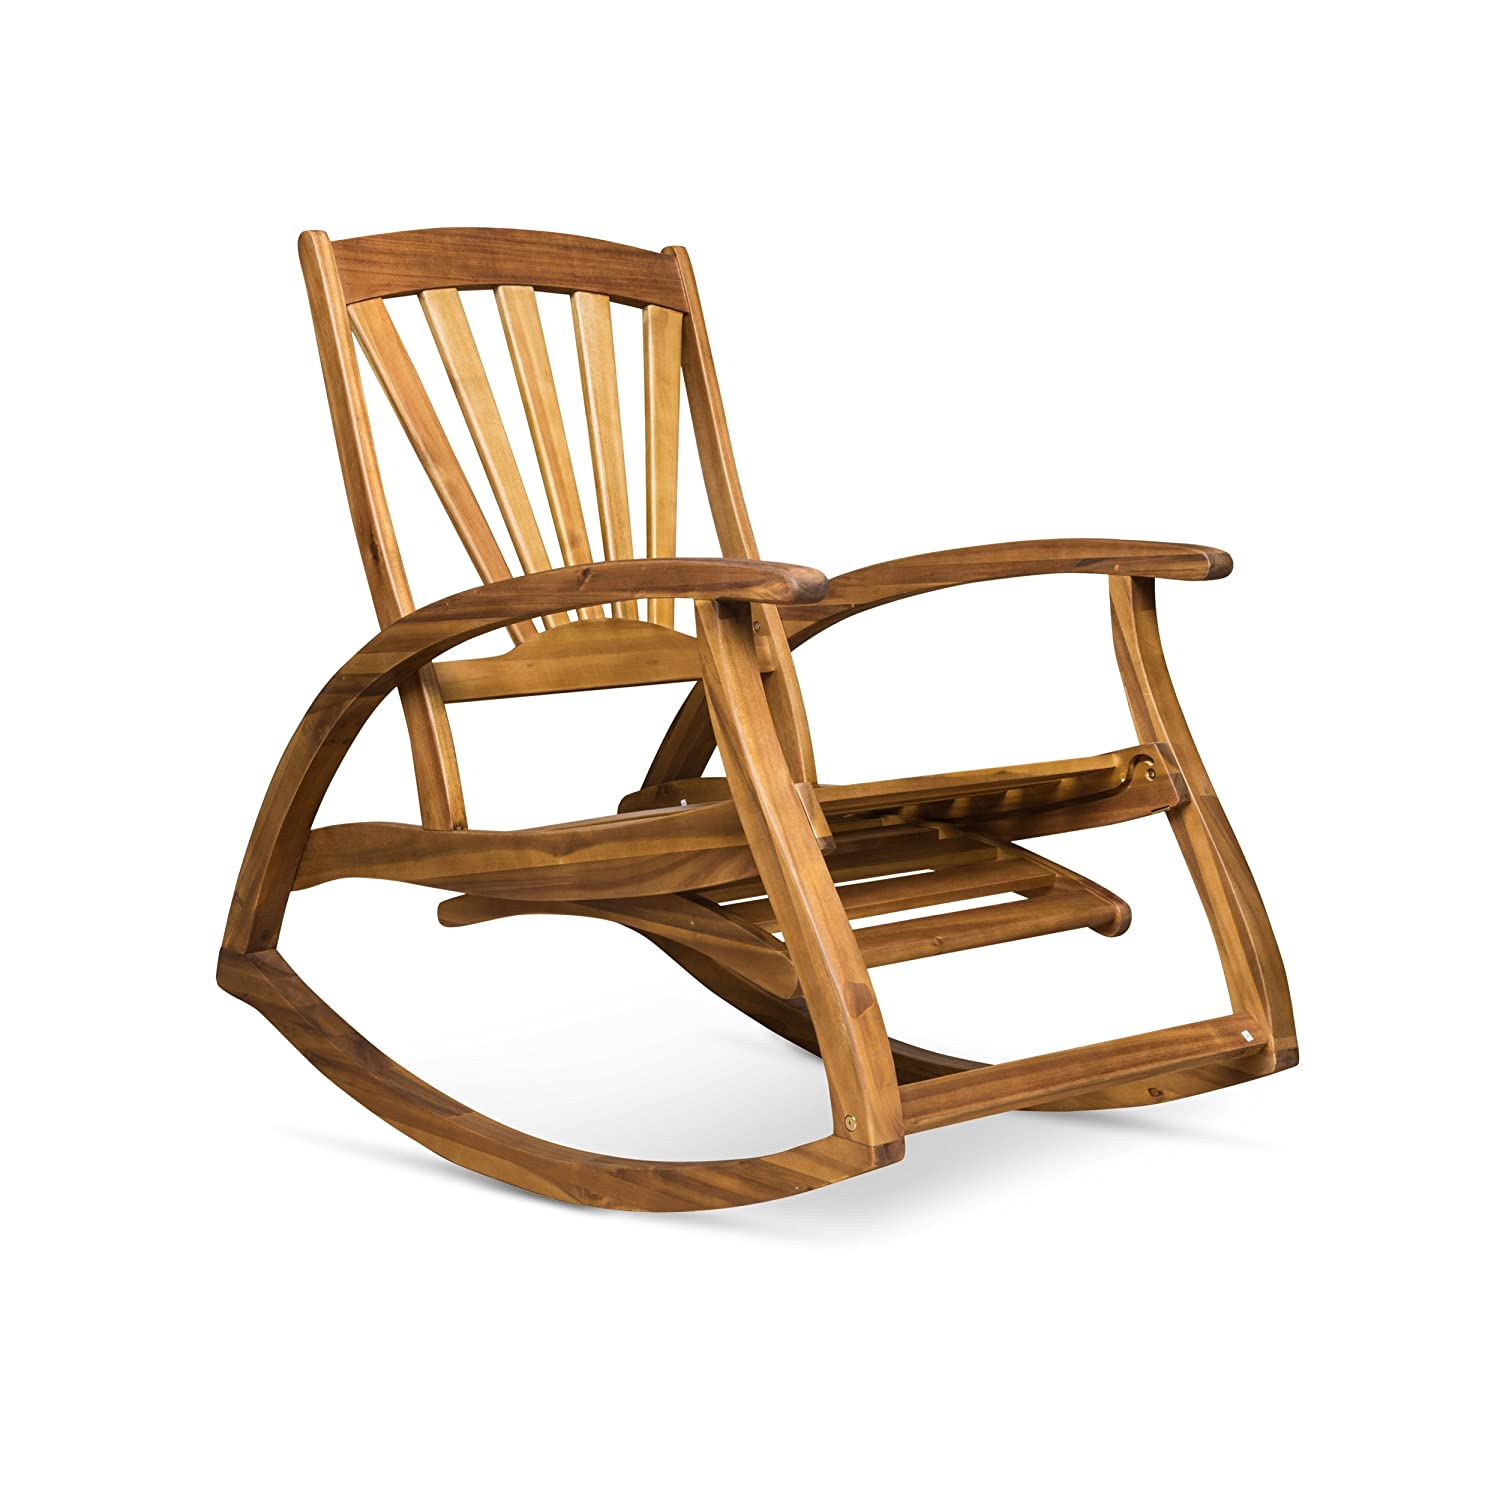 Great Deal Furniture Alva Outdoor Acacia Wood Rocking Chair with Footrest Teak Finish